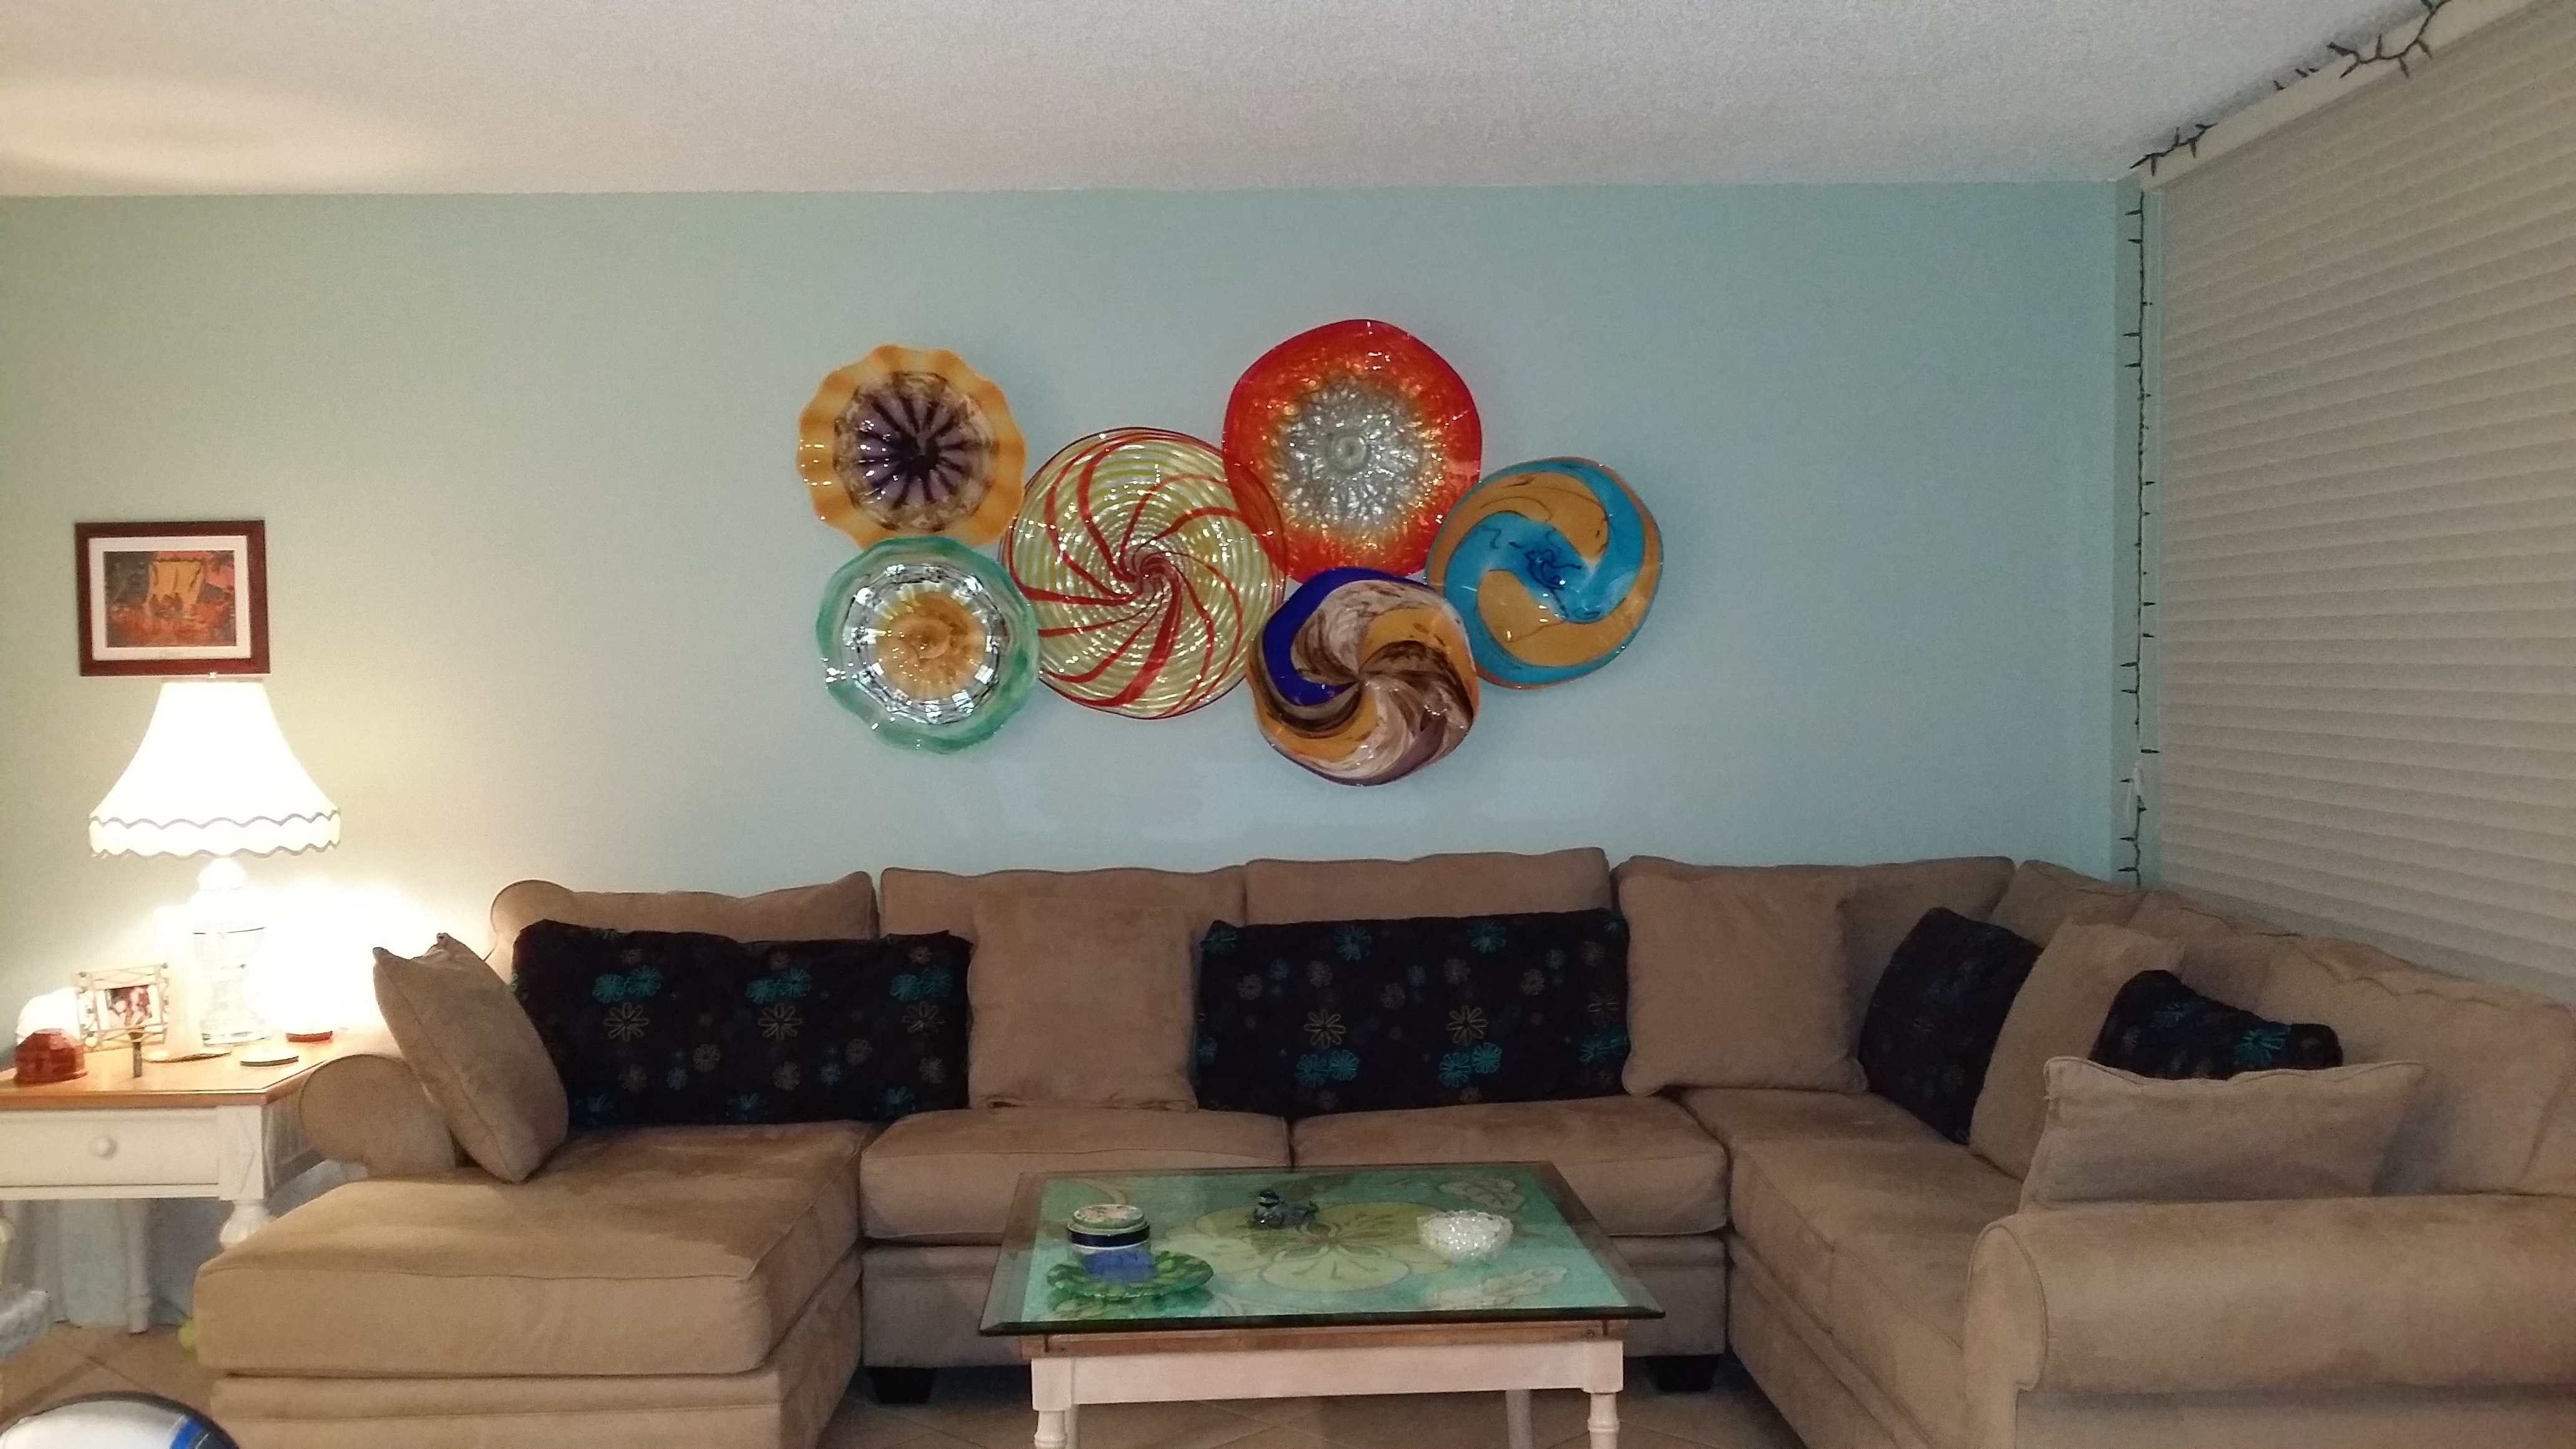 Wall Decor Glass Plates – Jscollectionofficial Intended For Current Glass Plate Wall Art (View 13 of 15)